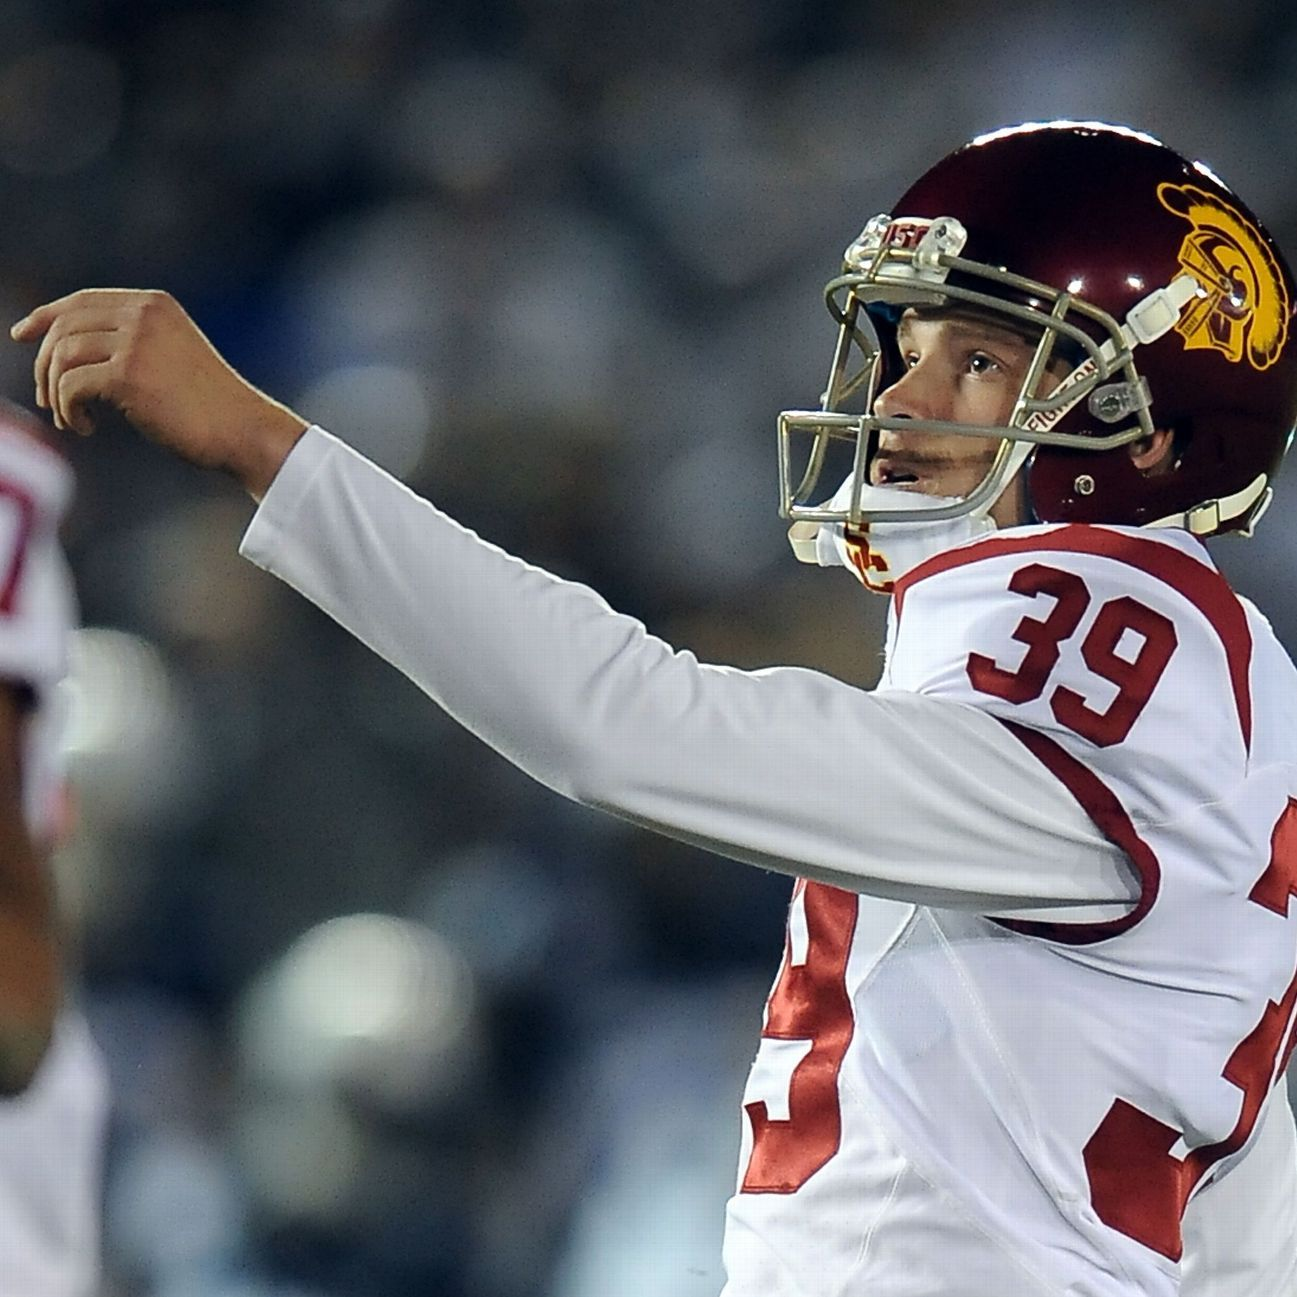 Matt Boermeester has filed a lawsuit alleging USC ruined his academic and athletic careers when he was expelled in 2017 after an alleged altercation between him and his girlfriend.